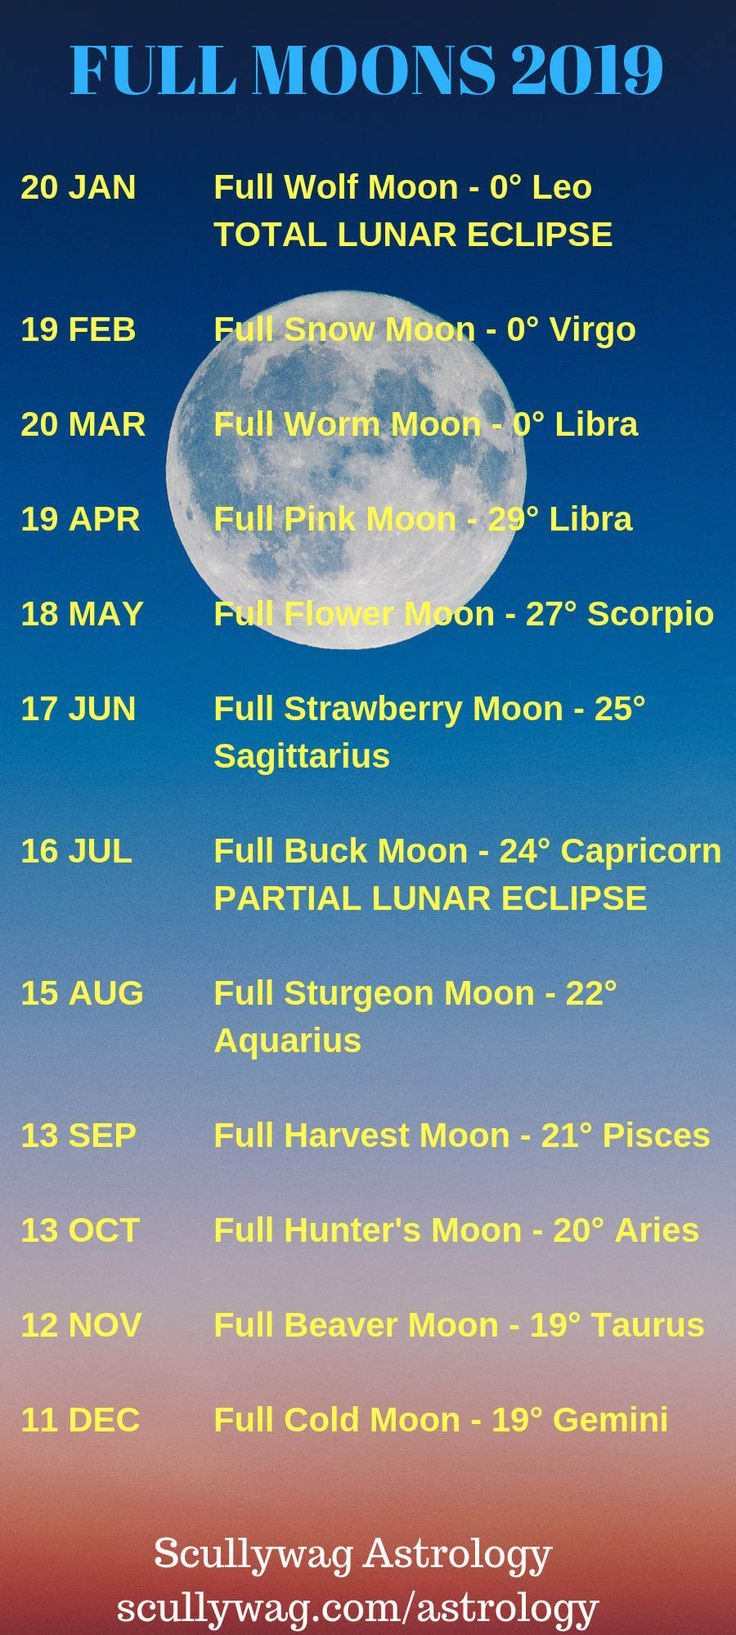 Full Moon dates and zodiac degrees for 2019  #astrology #moon